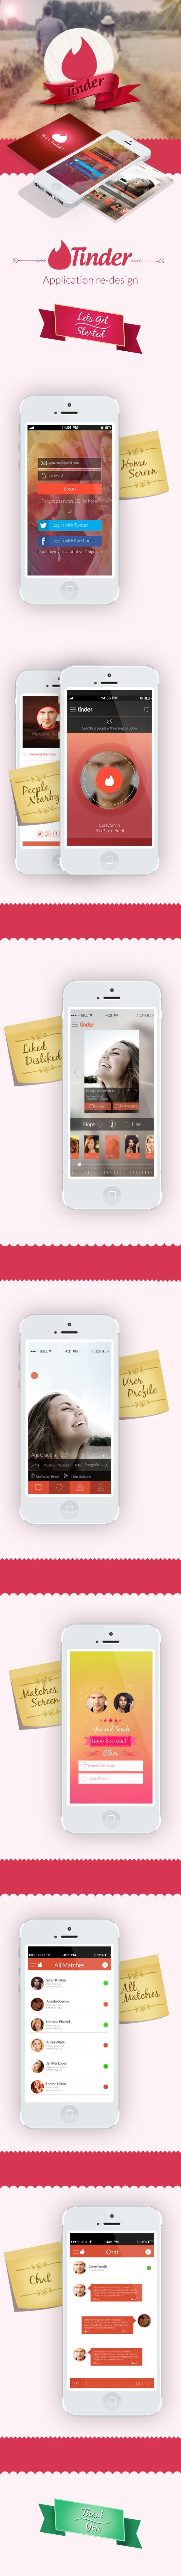 Tinder Redesign for iOS and Android on Behance